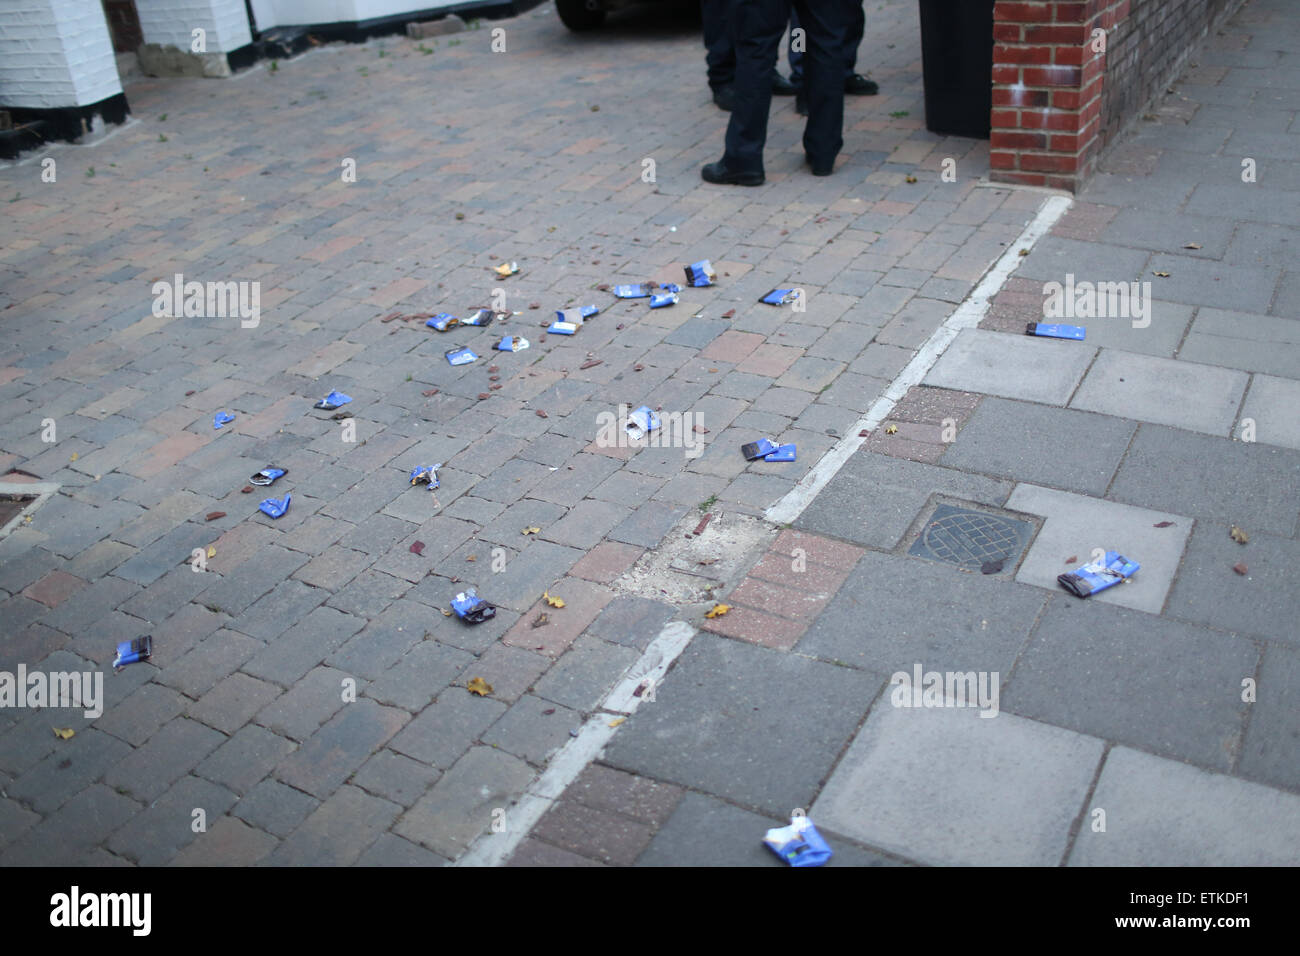 London, United Kingdom, 14 June 2015 - Smashed chocolate on the pavement following the arrest of a man after alleged - Stock Image